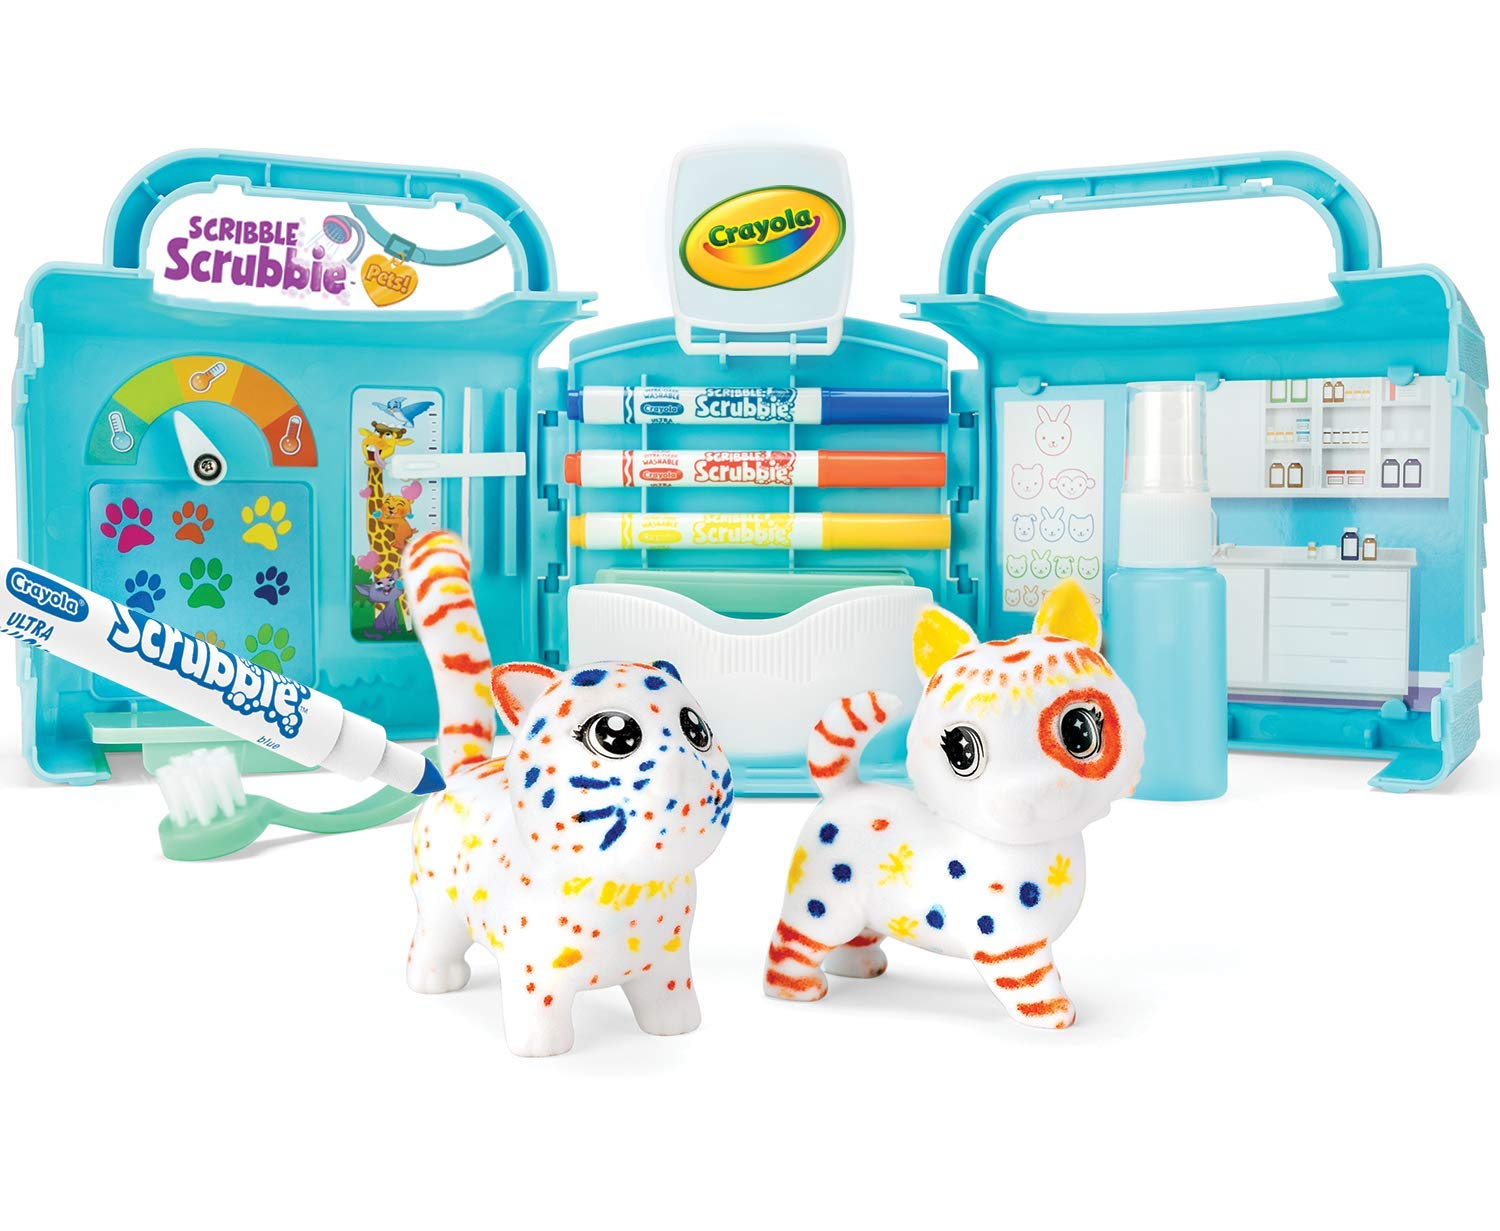 Crayola Scribble Scrubbie Pets, Vet Toy Playset with Toy Pets, Kids at Home Activities, Gift for Kids